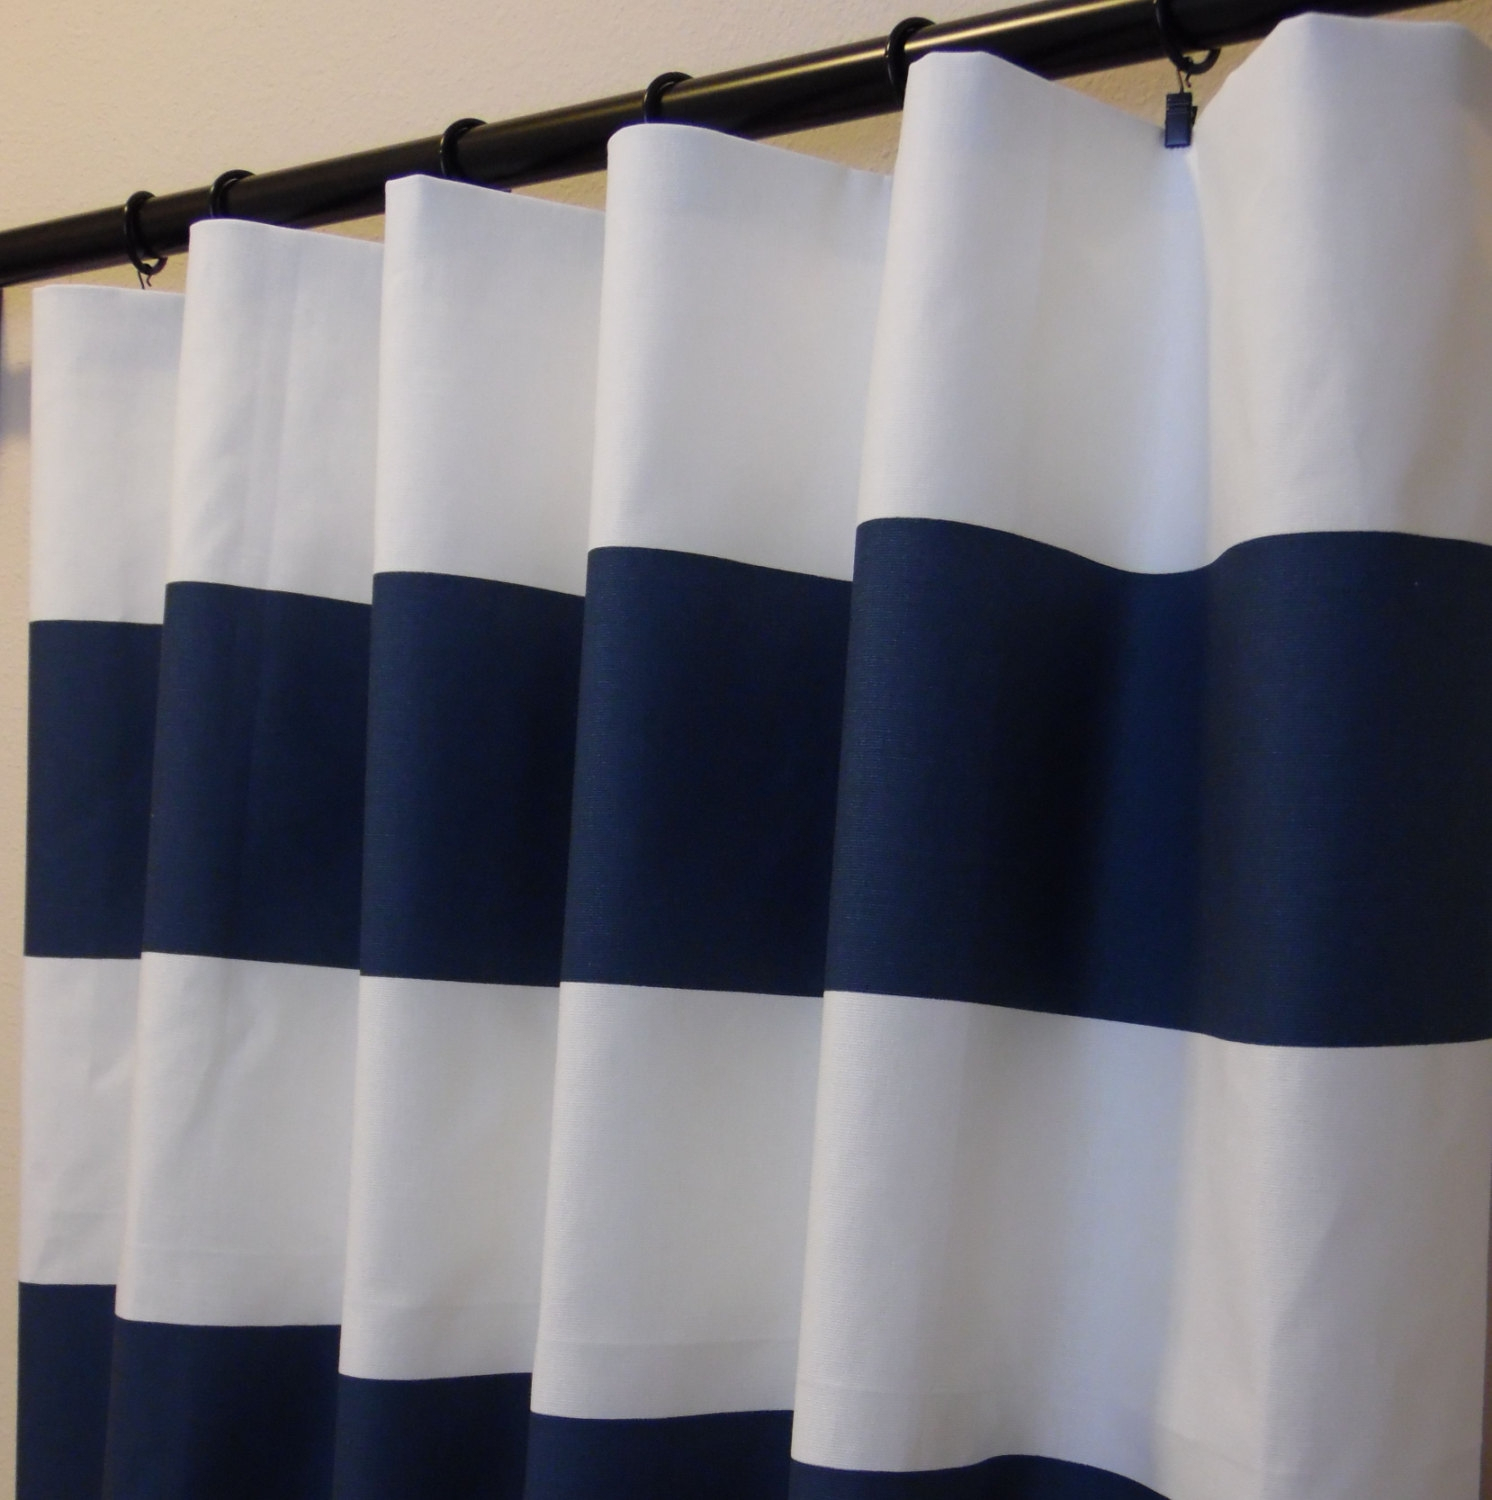 Wide Horizontal Stripe Shower Curtain Shower Curtain Ideas with regard to sizing 1492 X 1500